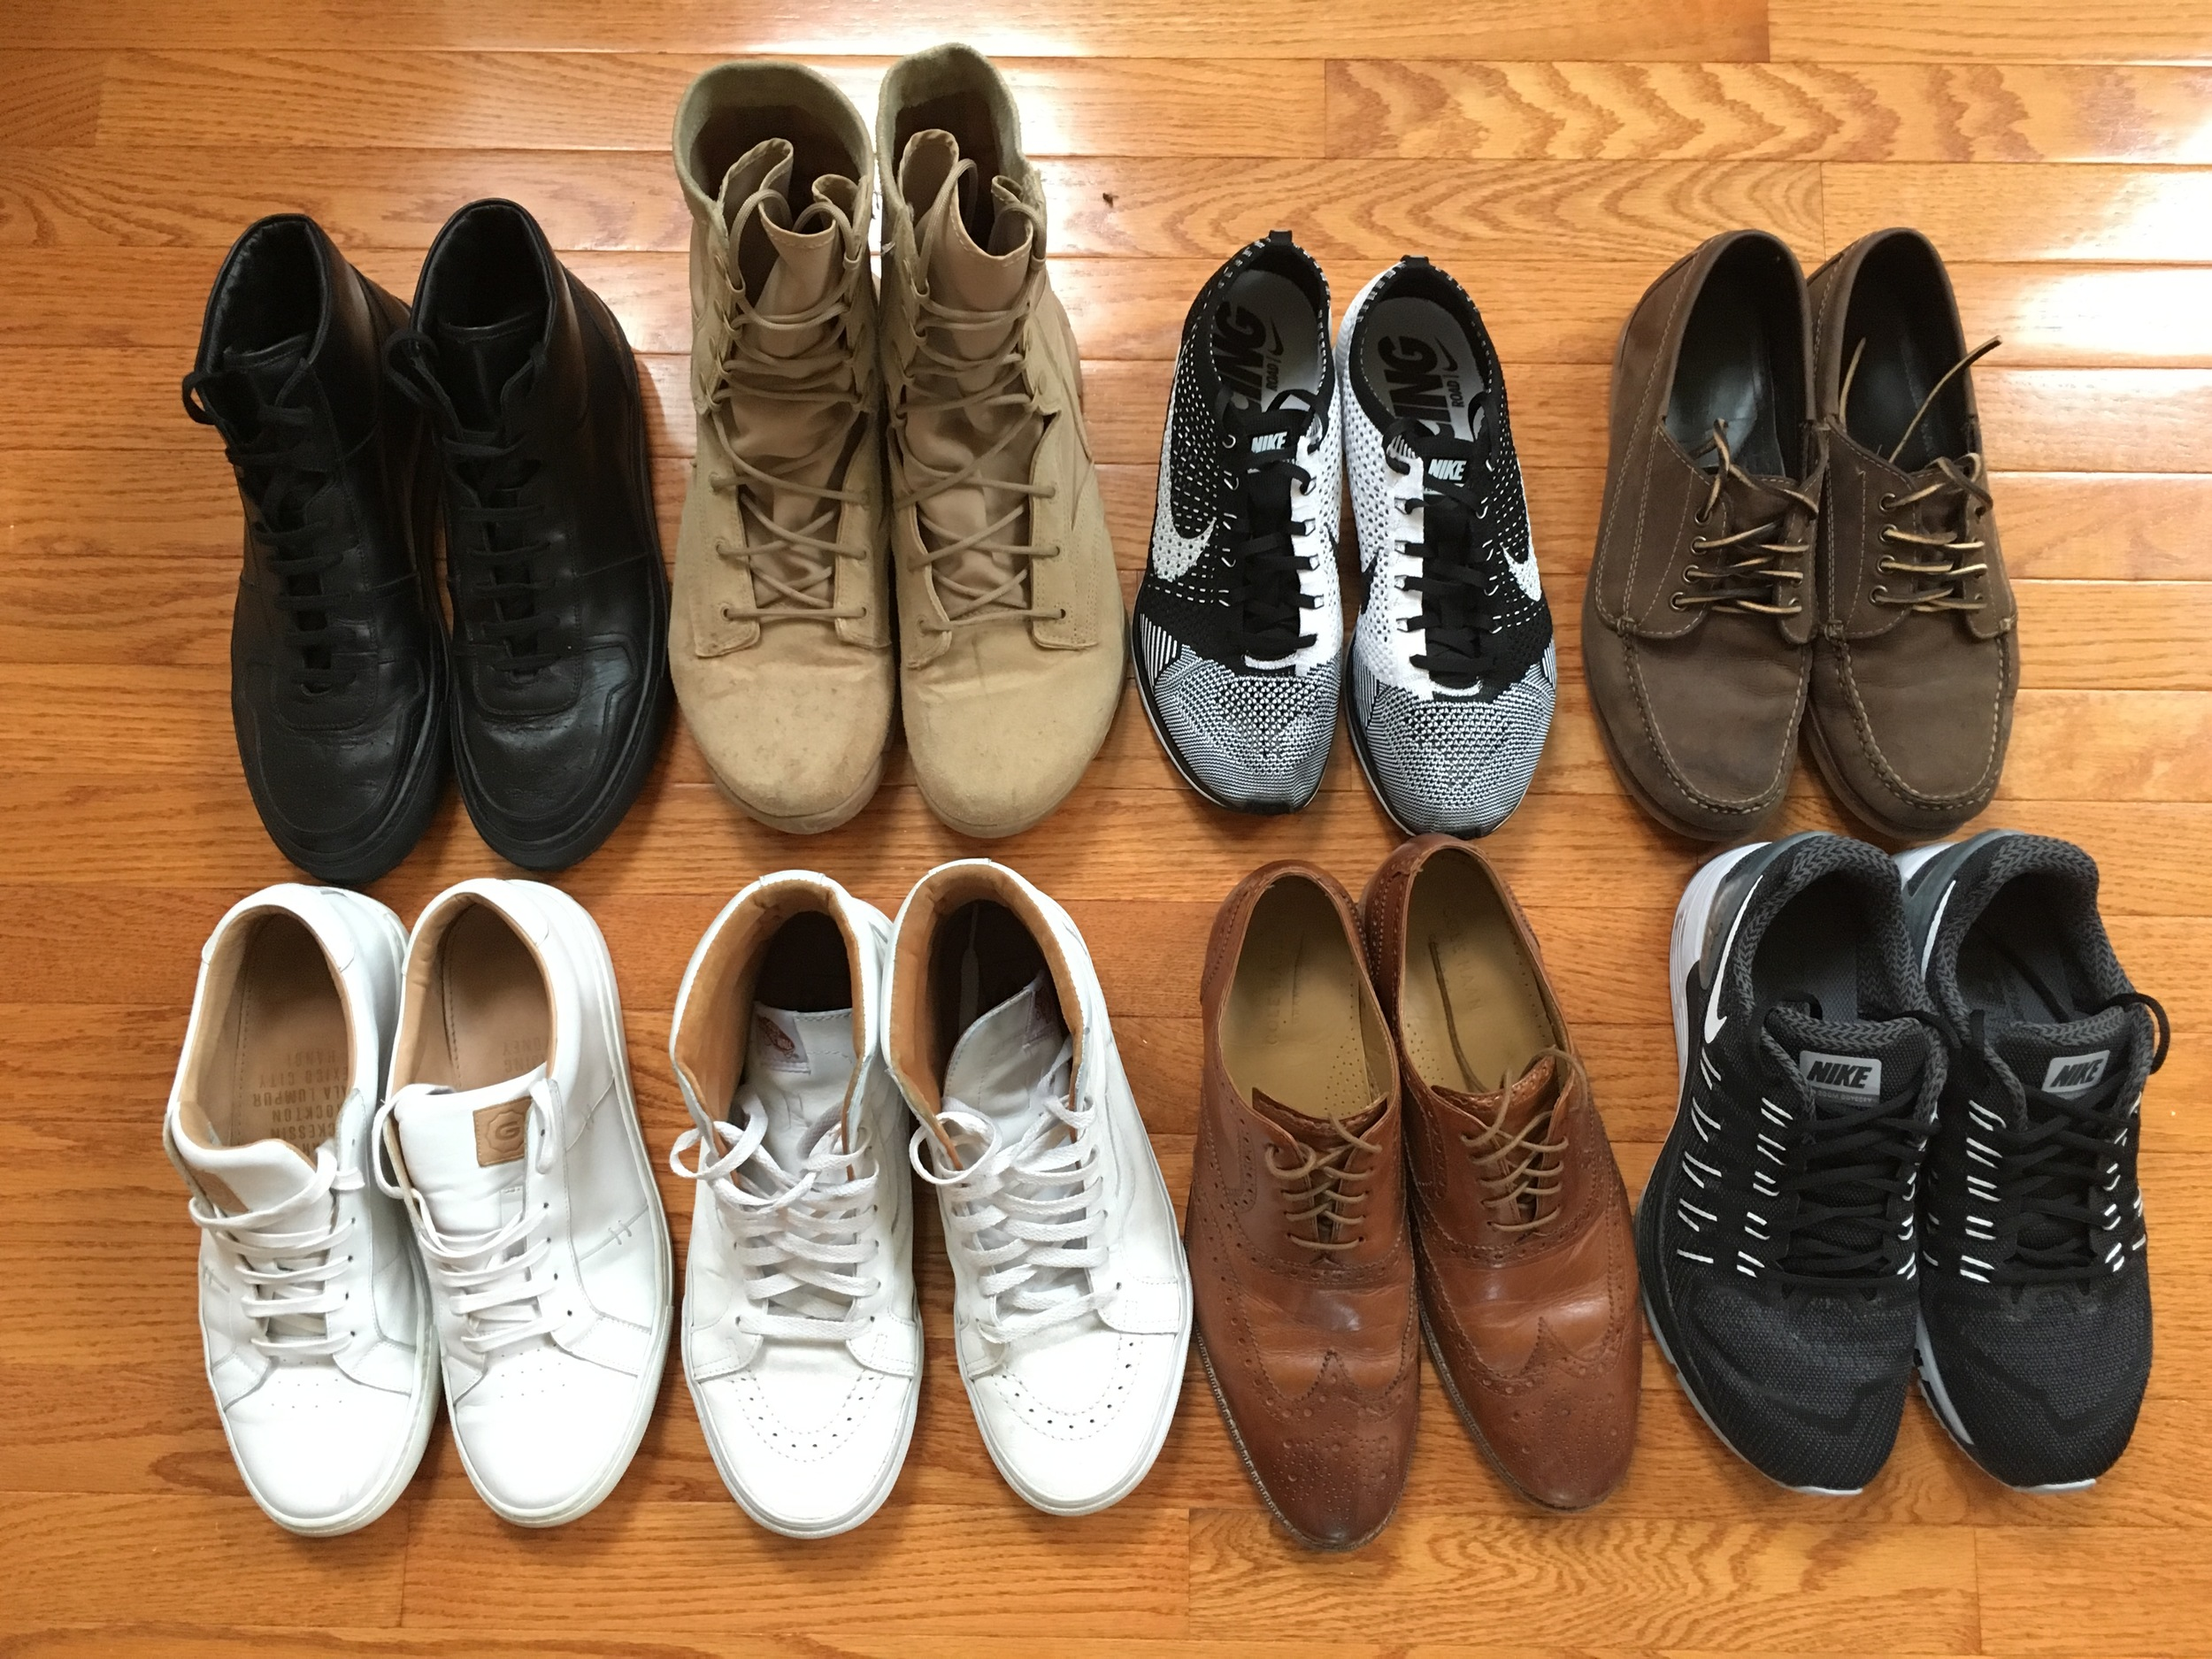 (left to right)  Top:  Common Projects BBall High/Nike SFB/Nike Flyknit Racer/LL Bean Signature Blucher Moc.  Bottom:  Greats Royale/Vans Sk8-Hi/Cole Haan Cambridge Wingtip/Nike Zoom Odyssey.